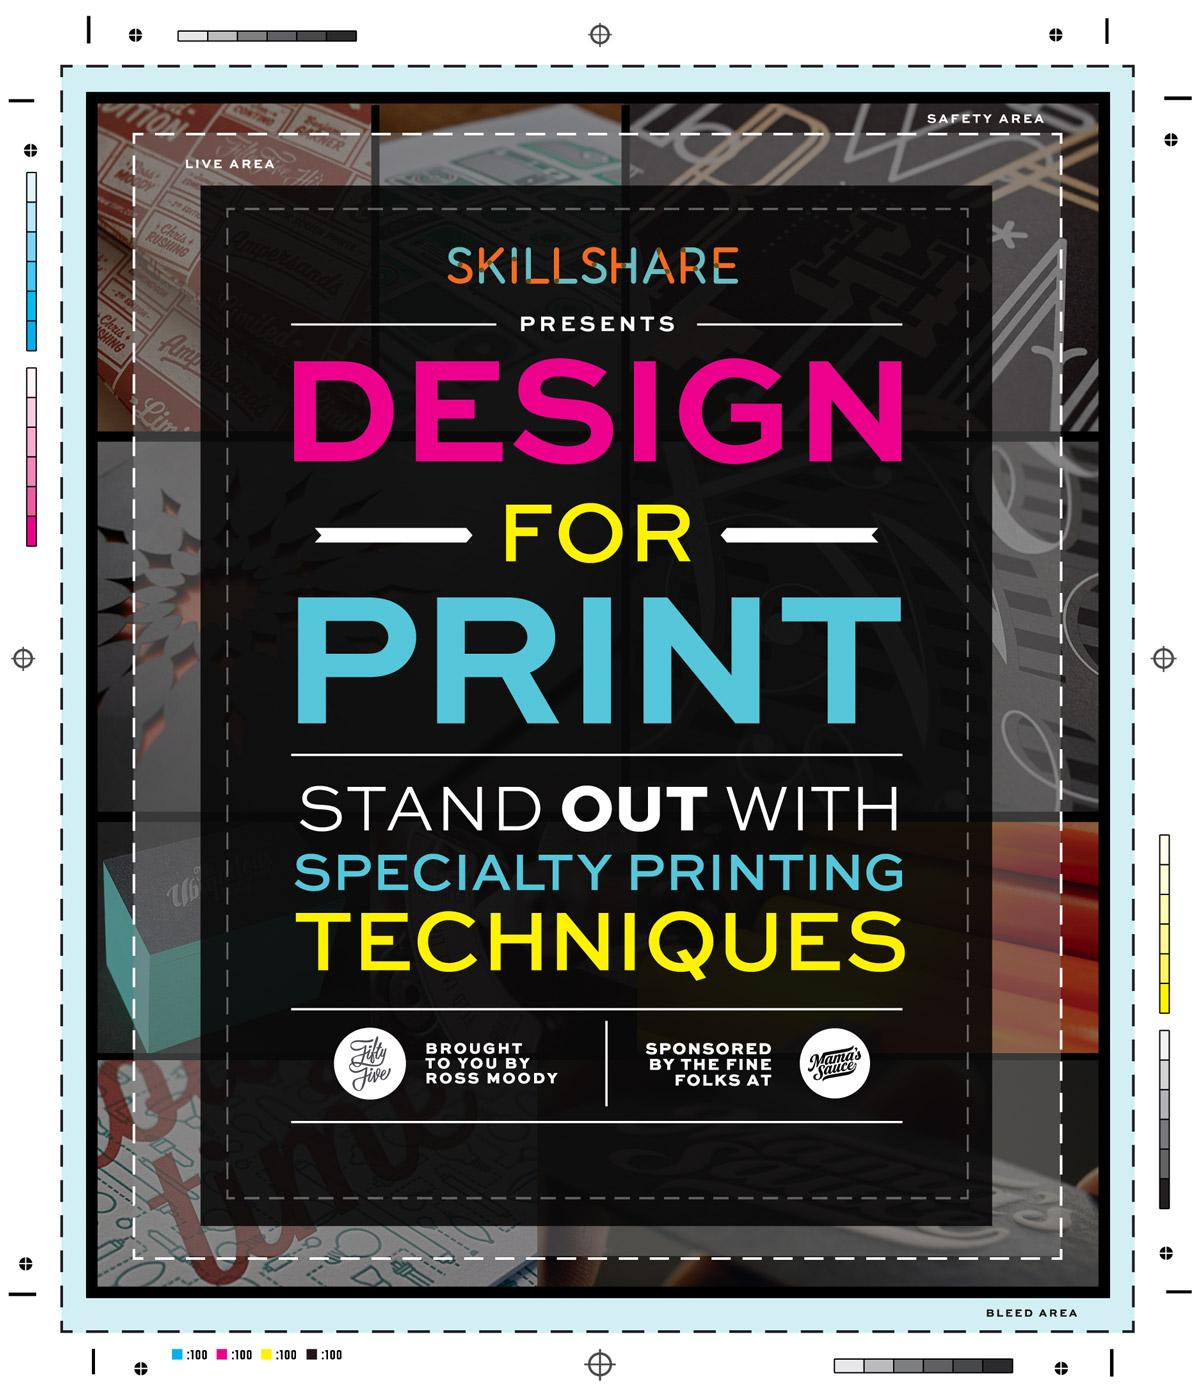 Designs Stand Out : Design for print stand out with specialty printing